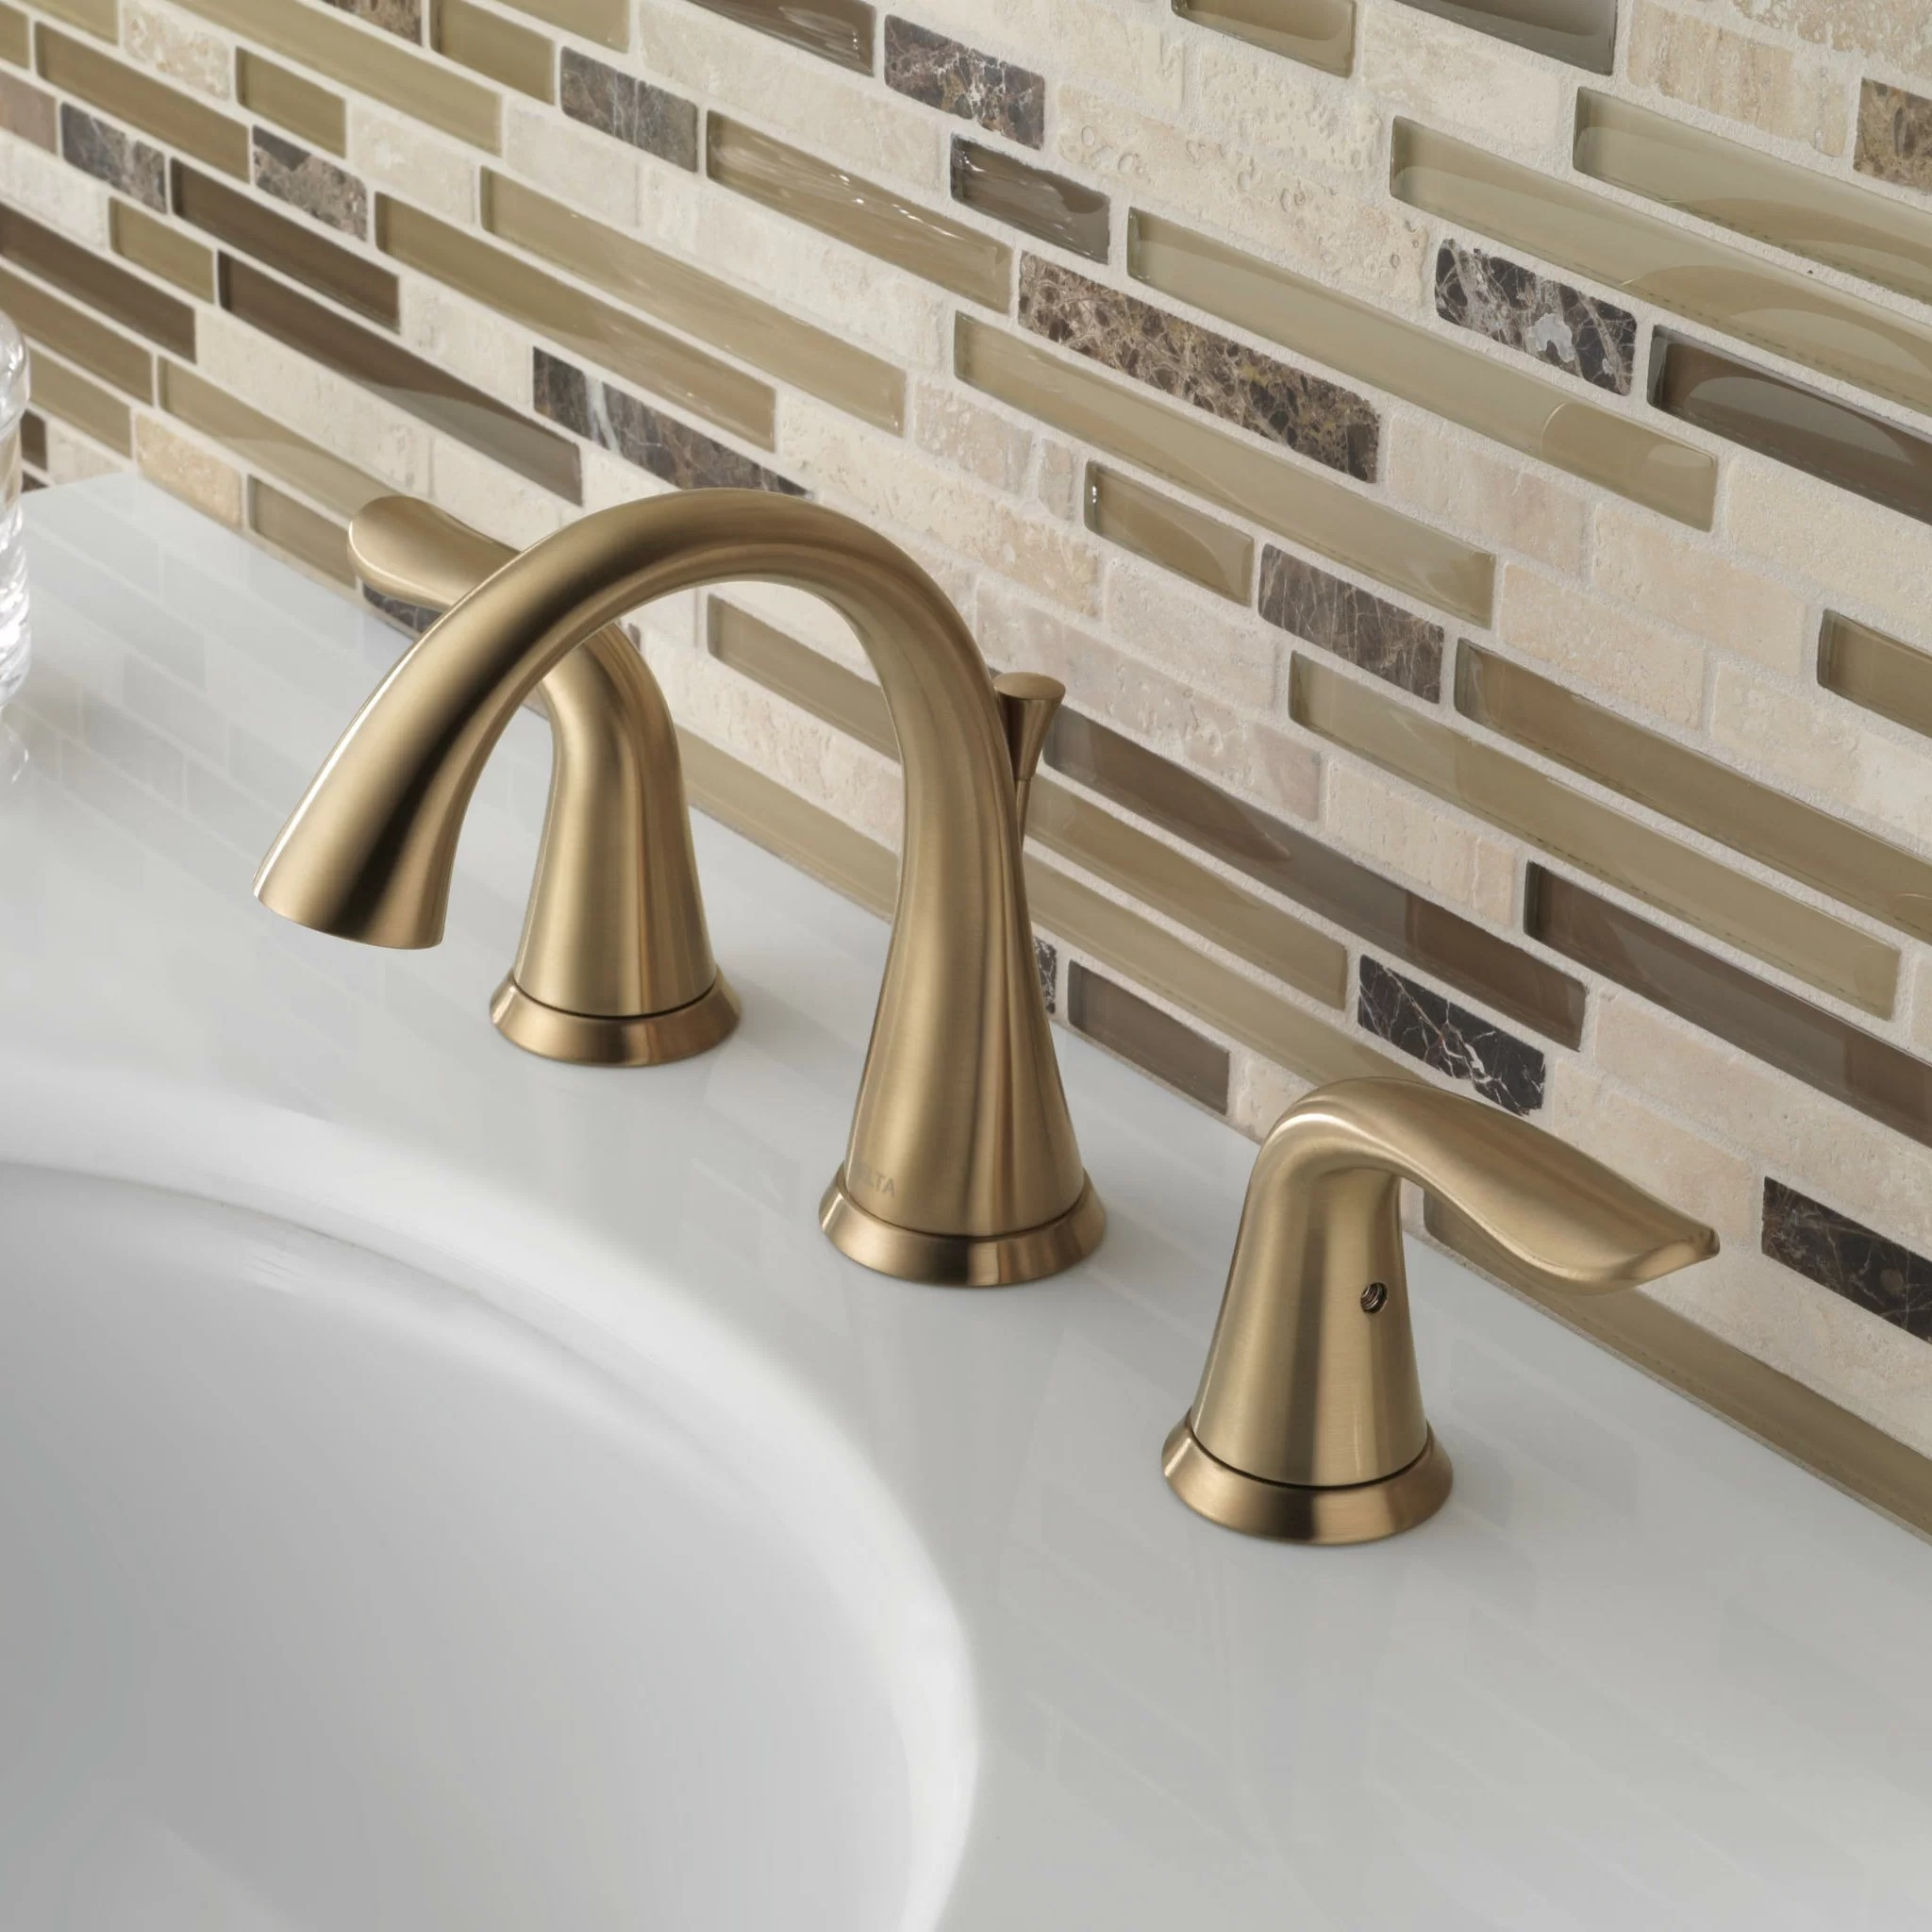 lahara widespread bathroom faucet with drain assembly and diamond seal technology